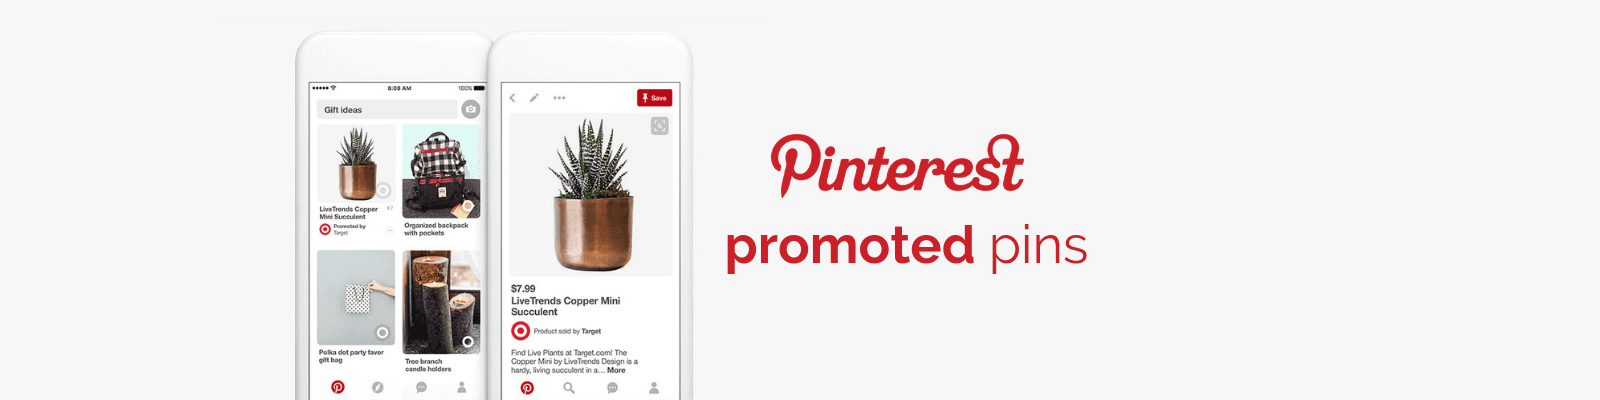 pinterest promoted pins pinteresd ads españa